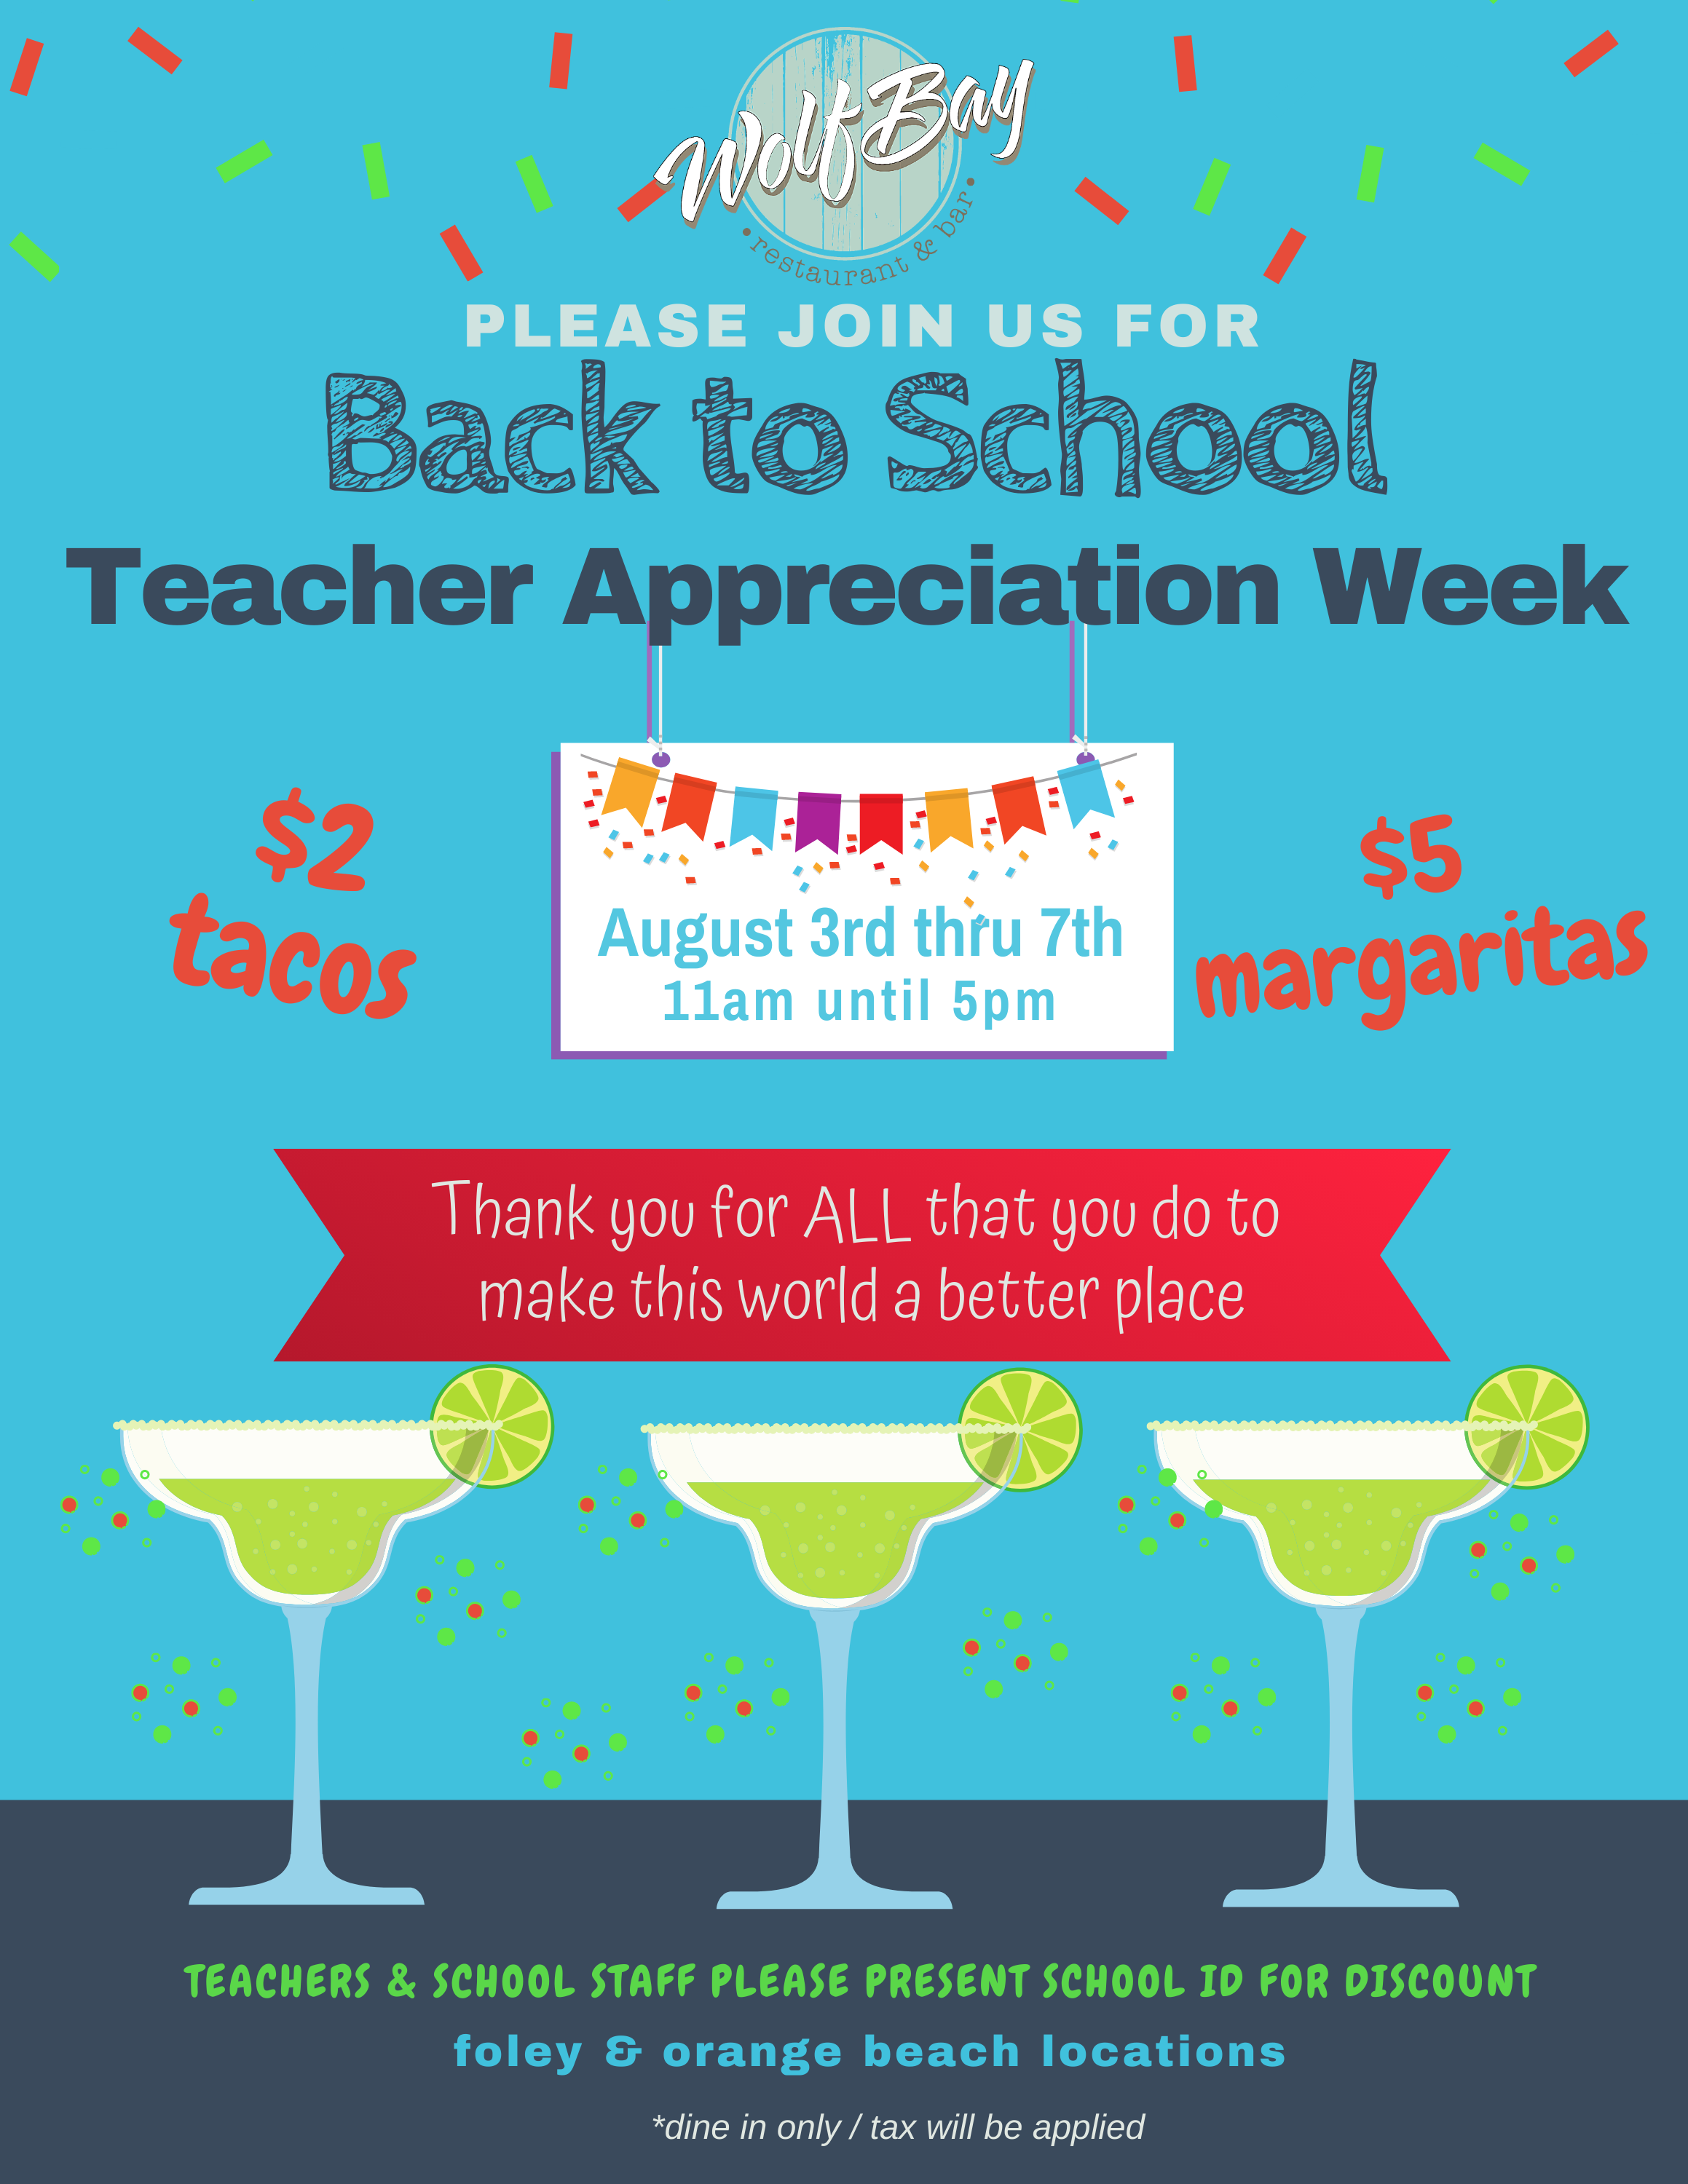 Back to School Teacher Appreciation